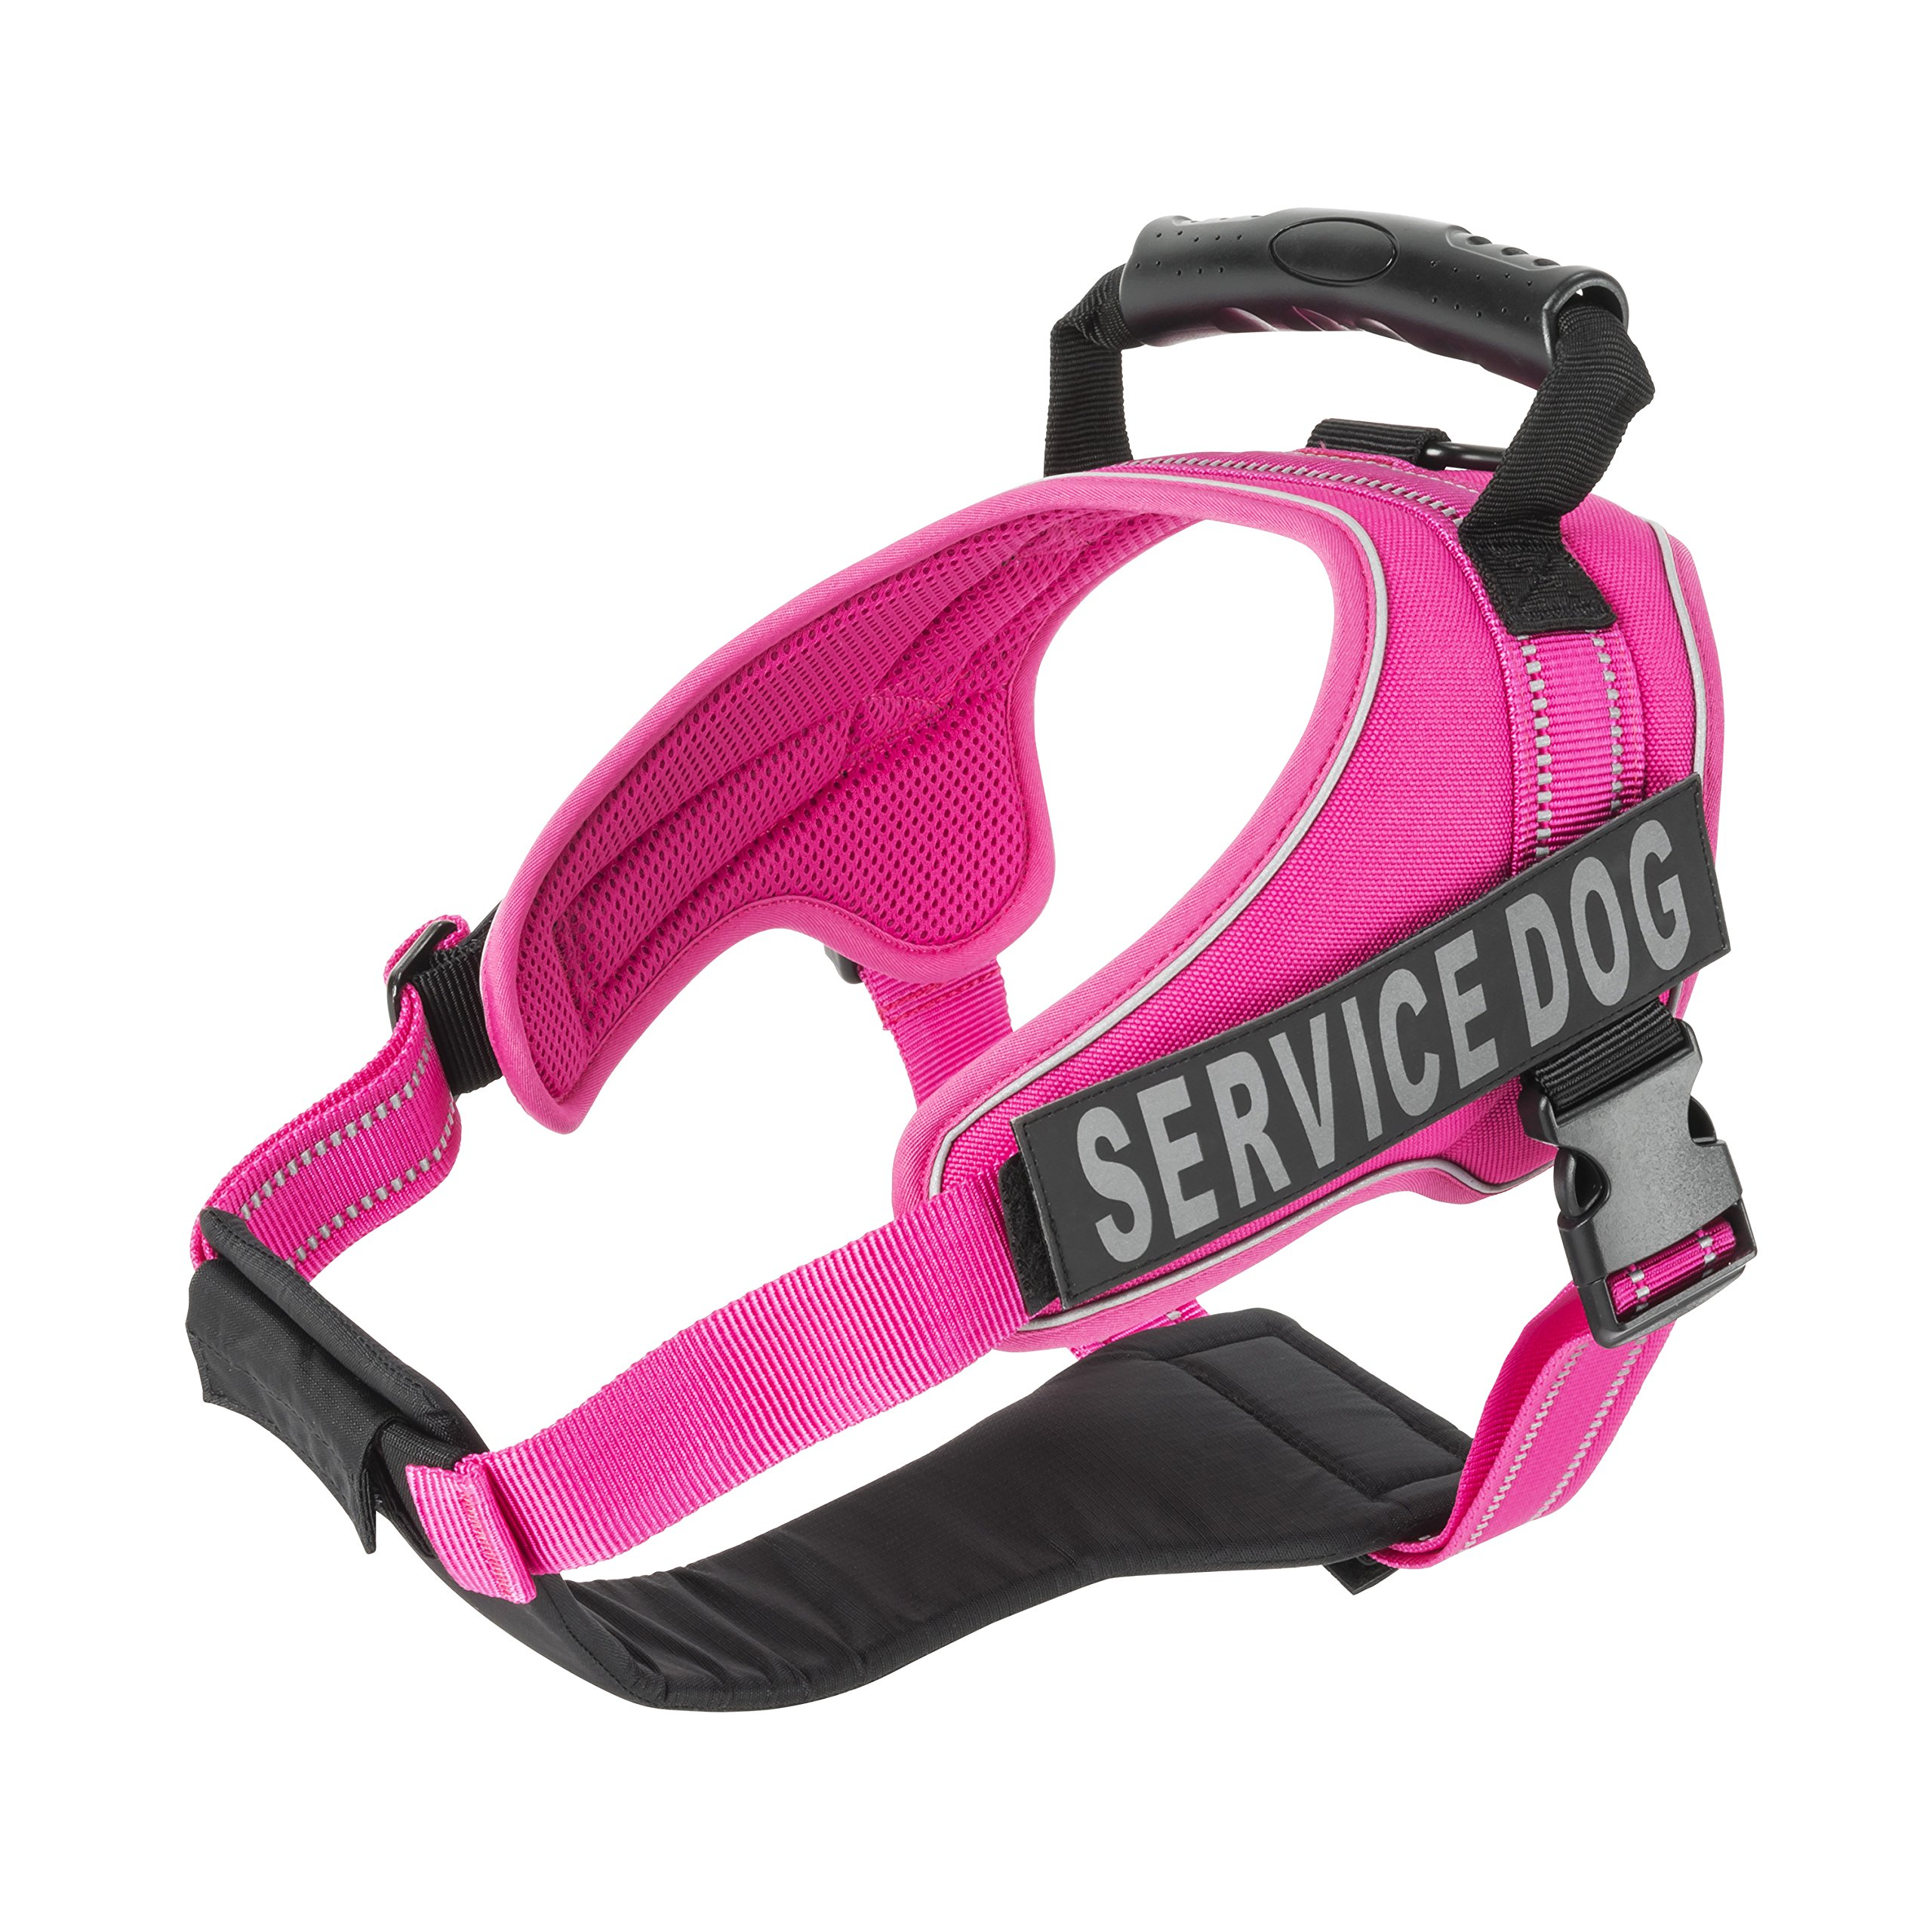 Service Dog Vest Harness - Military Grade Assistance Dog Harness with Removable Reflective Patches - Comfortable & Safe - Handle for Maximum Training, Walking Control - Free ADA eBook(XS, Pink)